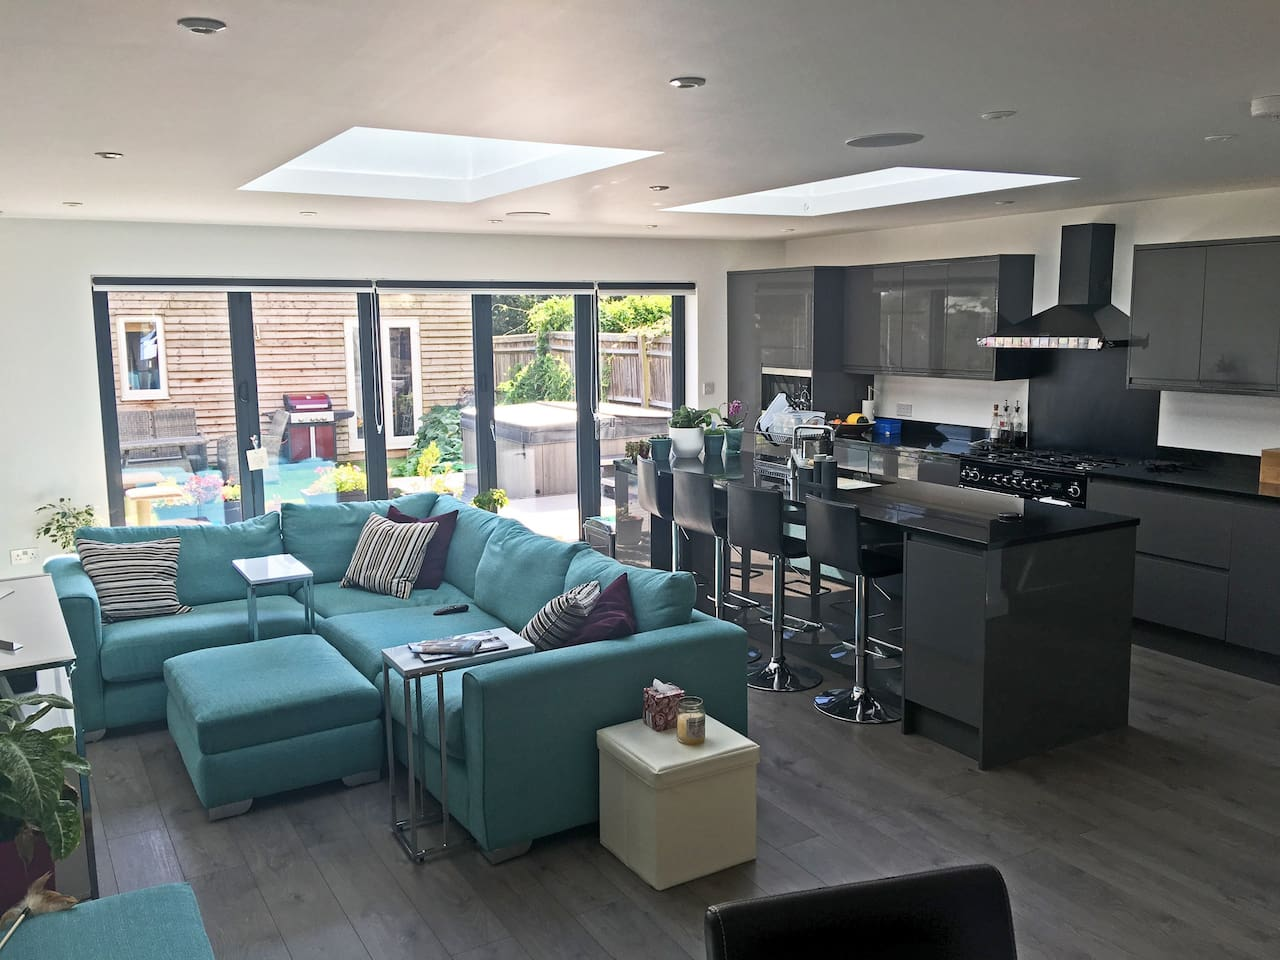 Kitchen & shared living space